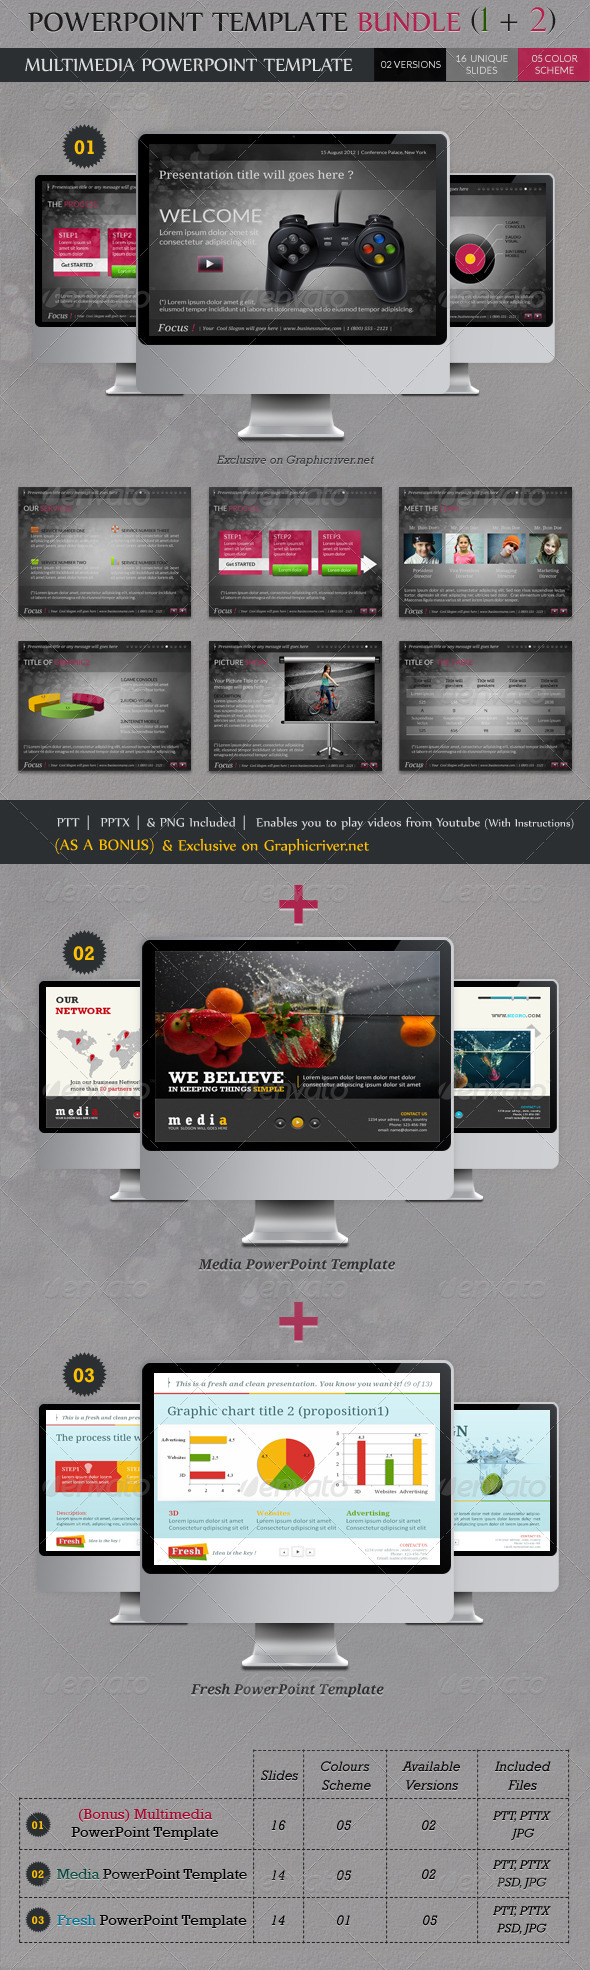 Powerpoint Templates Bundle (Bonus + 2 Pack) - Powerpoint Templates Presentation Templates